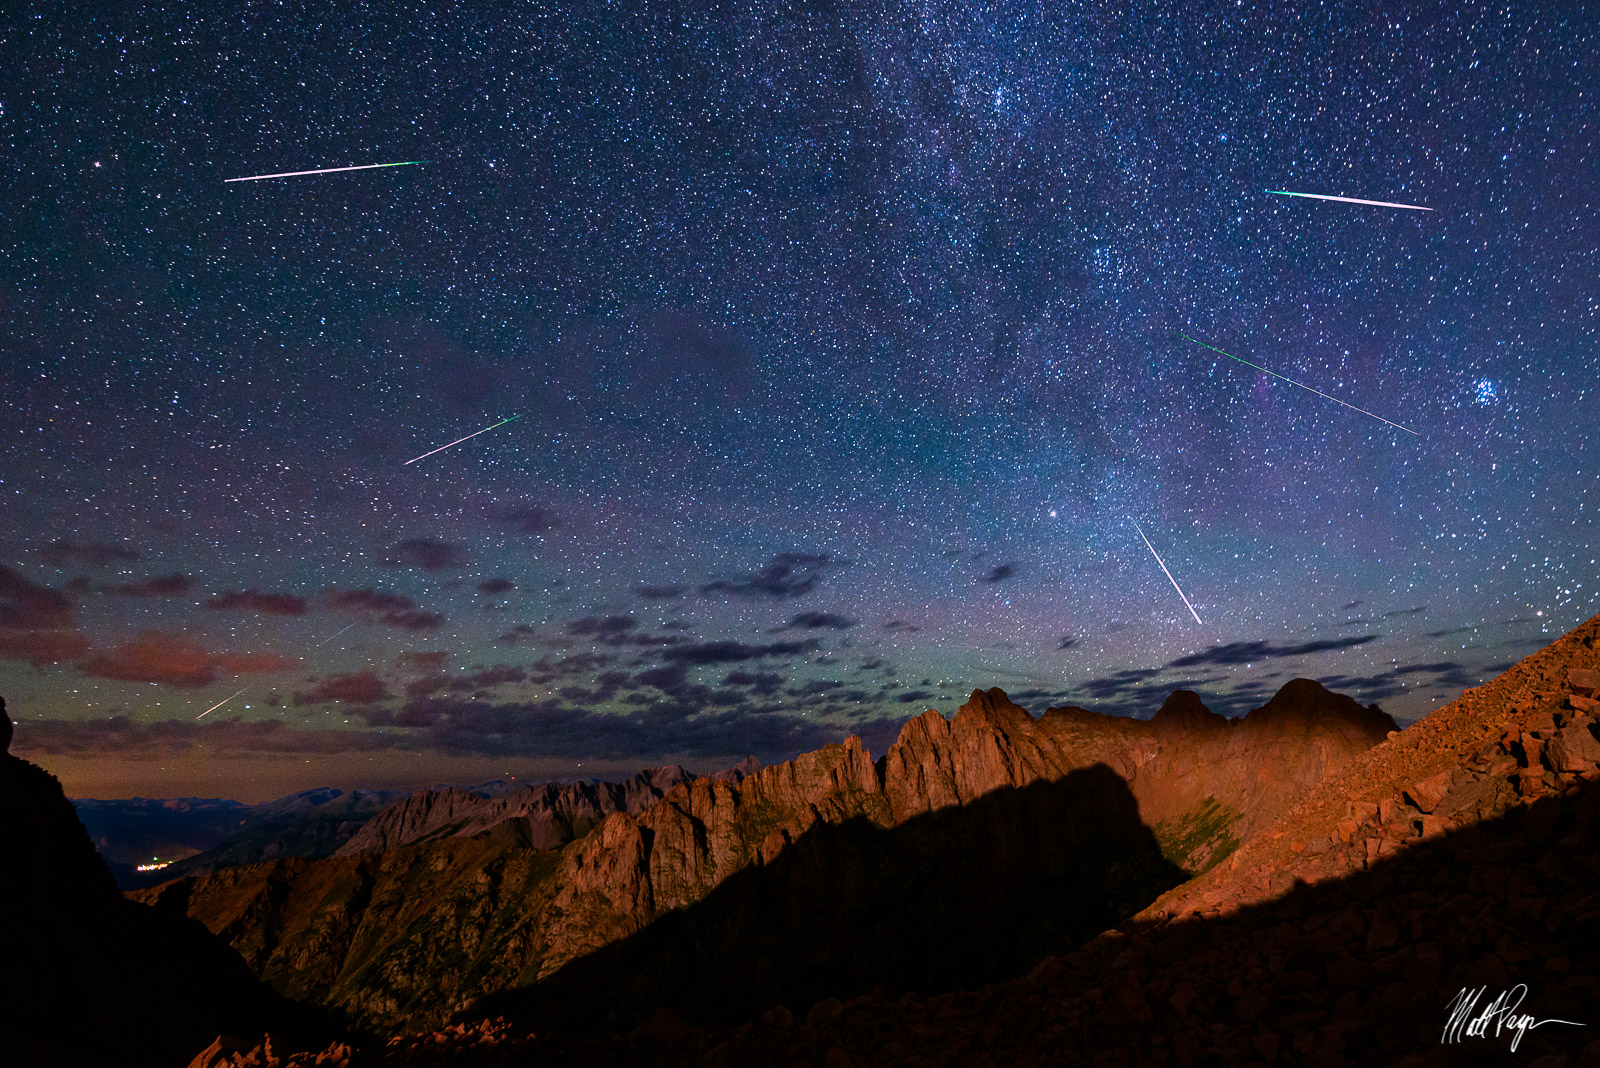 13ers, Animas Mountain, Colorado, Durango, Needle Range, Landscape, Meteor Shower, Monitor Peak, Needle Range, Night, Perseid Meteor Shower, San Juan Mountains, Silverton, magical, stars, photo